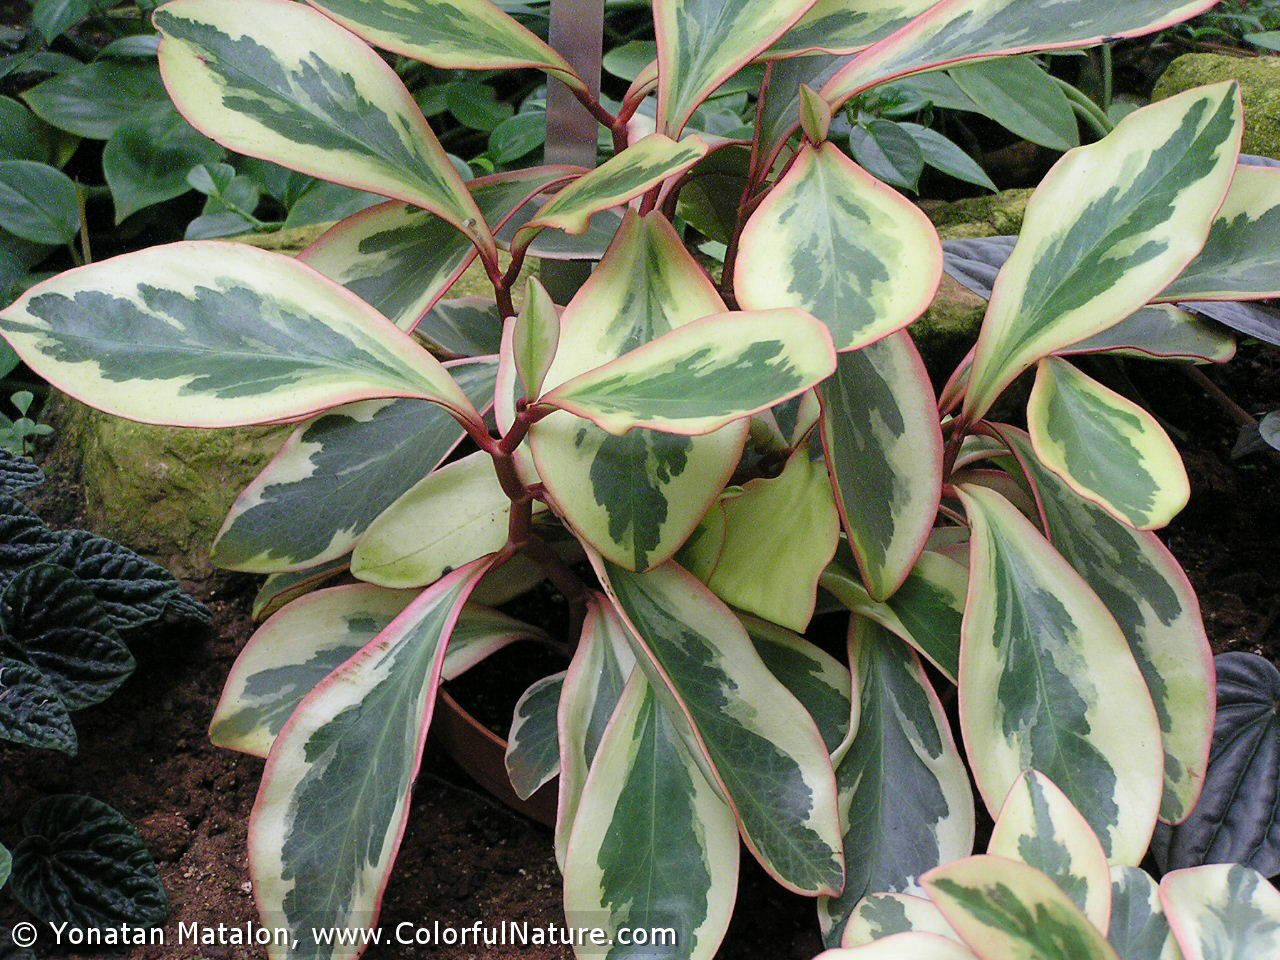 1fdbc43fb779f45103d276251f42431a Variegated Peperomia House Plant Care on jelly peperomia plant care, peperomia obtusifolia care, variegated hoya plant care, variegated teardrop peperomia care, variegated yucca plant care, peperomia caperata plant care, variegated coleus plant care, variegated schefflera plant care, variegated ground cover plants, calathea care, variegated wax plant, variegated rubber plant, variegated wandering jew plant, variegated weeping fig plant care, variegated ginger plant care, variegated ivy plant, variegated house plant identification, peperomia clusiifolia plant care, variegated house plant with waxy leaves, variegated pittosporum care,